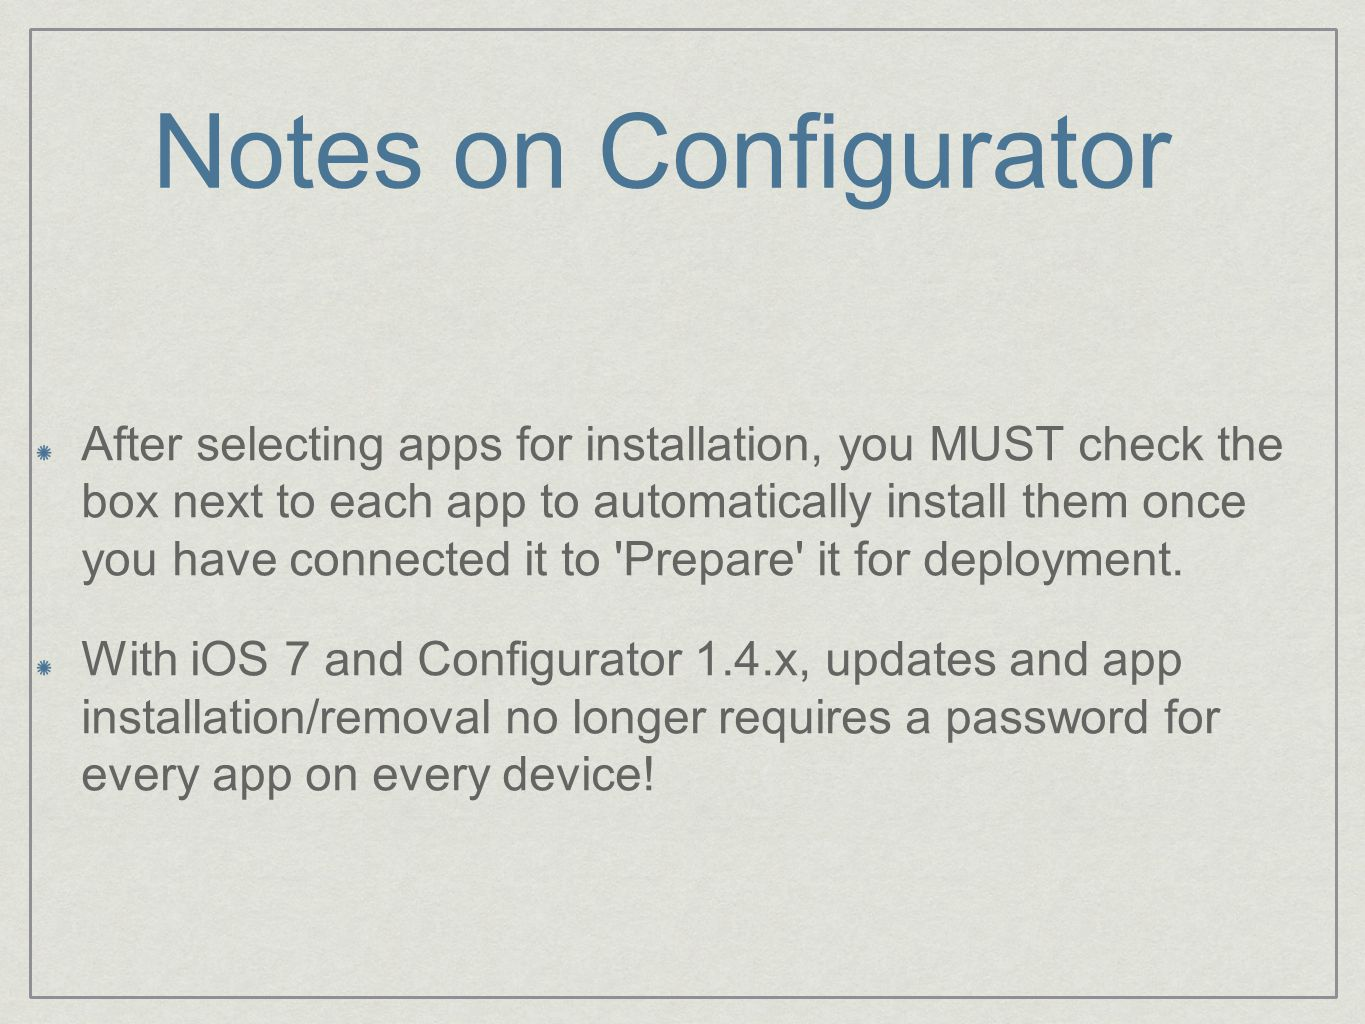 Notes on Configurator After selecting apps for installation, you MUST check the box next to each app to automatically install them once you have conne